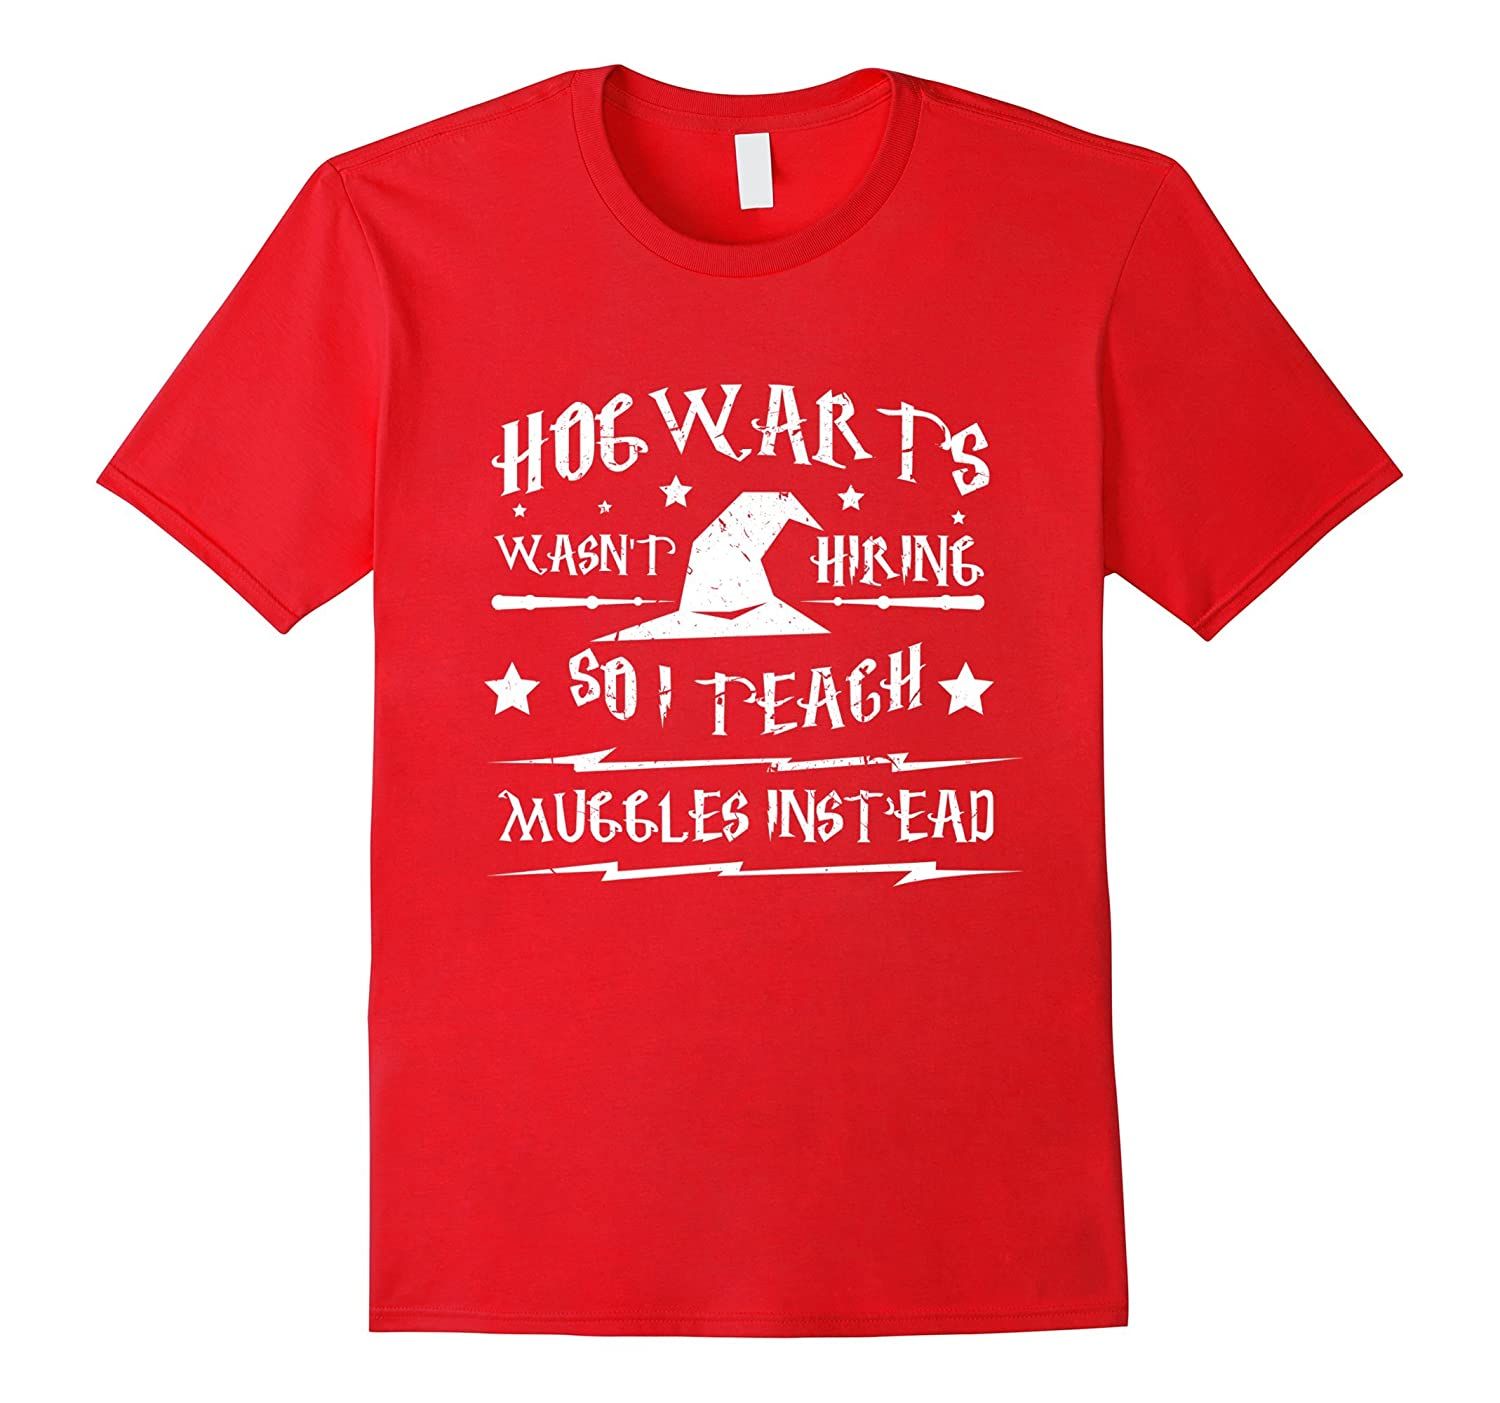 Hog warts wasn't hiring so i teach muggles best tshirt-T-Shirt